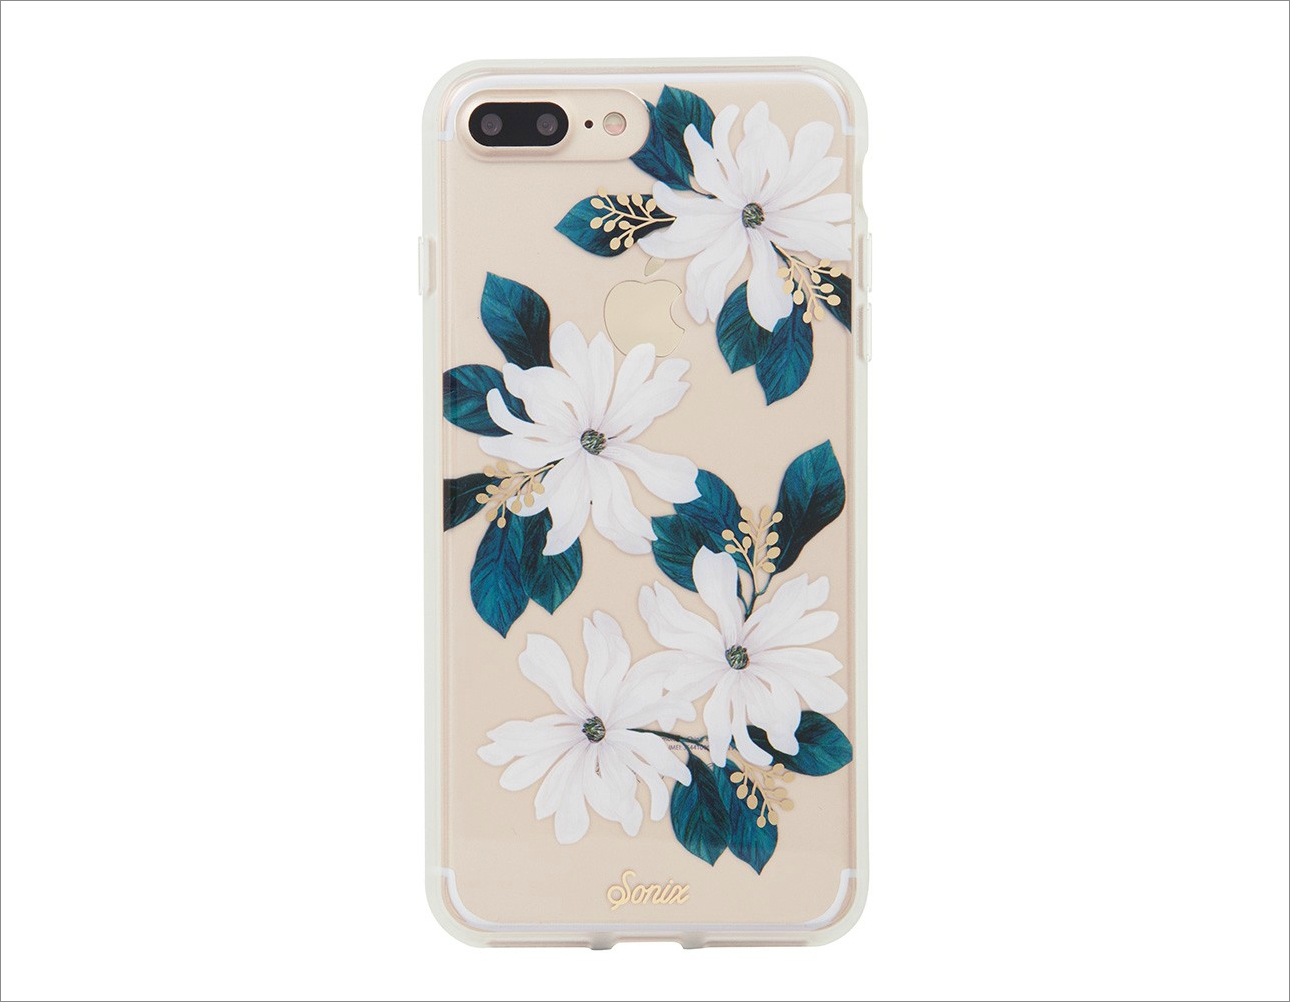 Sonix white delila iPhone 7 phone case white and blue mother's day gift ideas